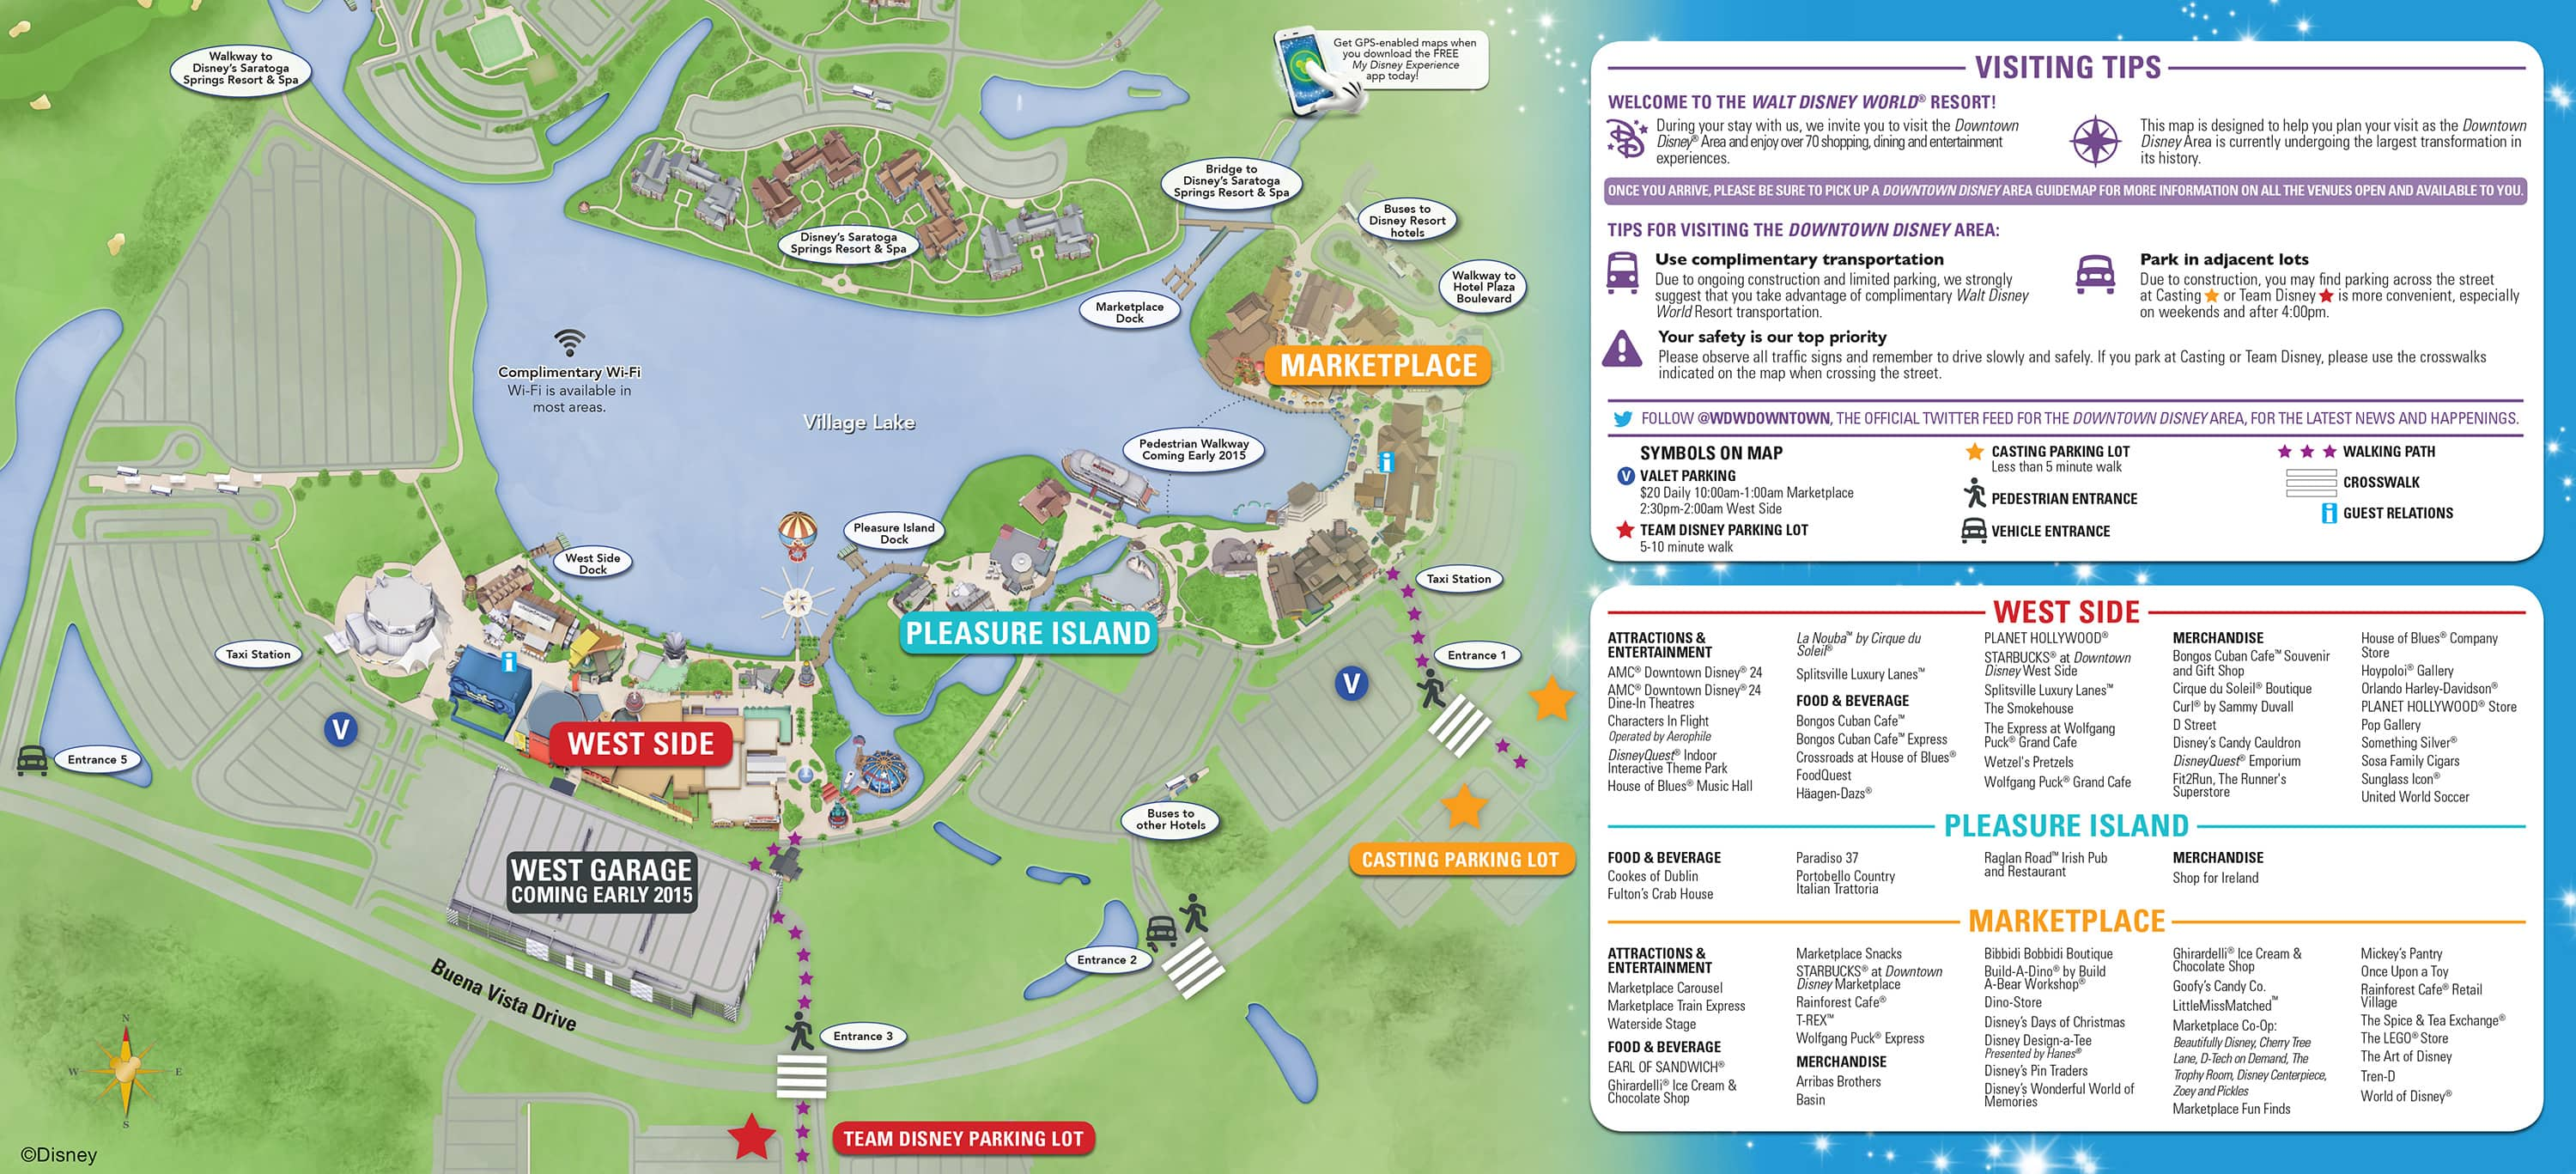 Downtown Disney Parking Information & Tips | Disney Parks Blog on